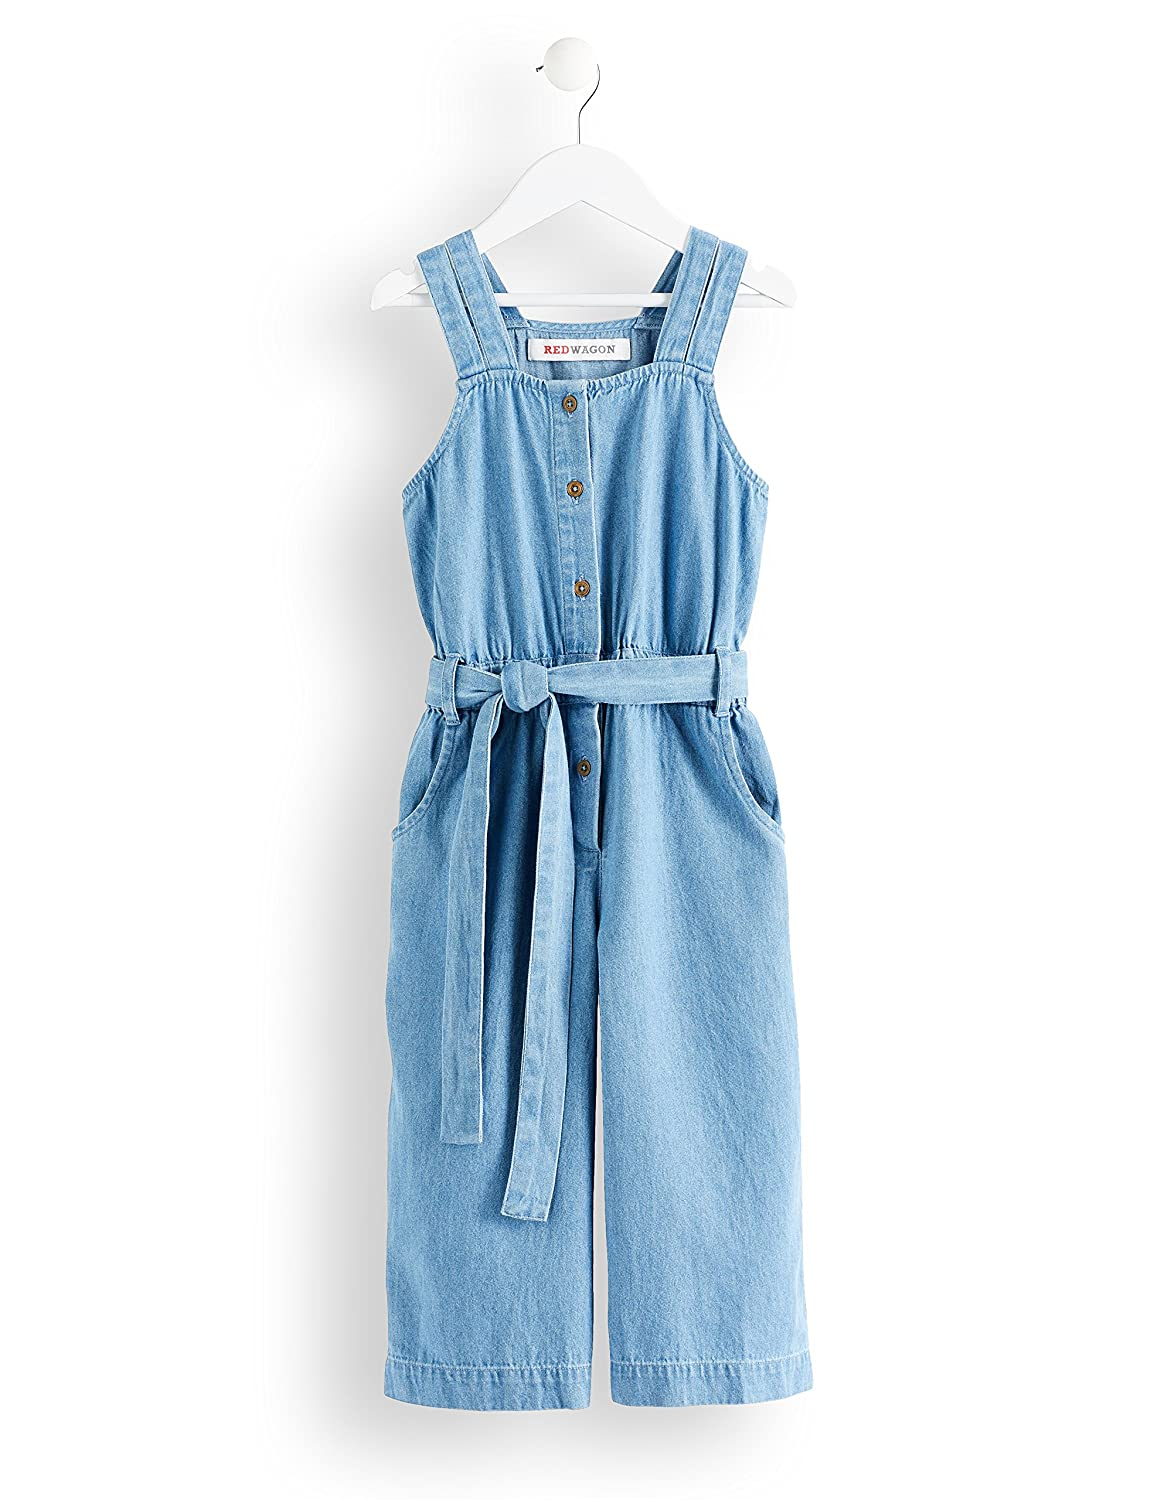 RED WAGON Tuta Modello Salopette in Chambray Bambina PI-AM-SS-18-06C